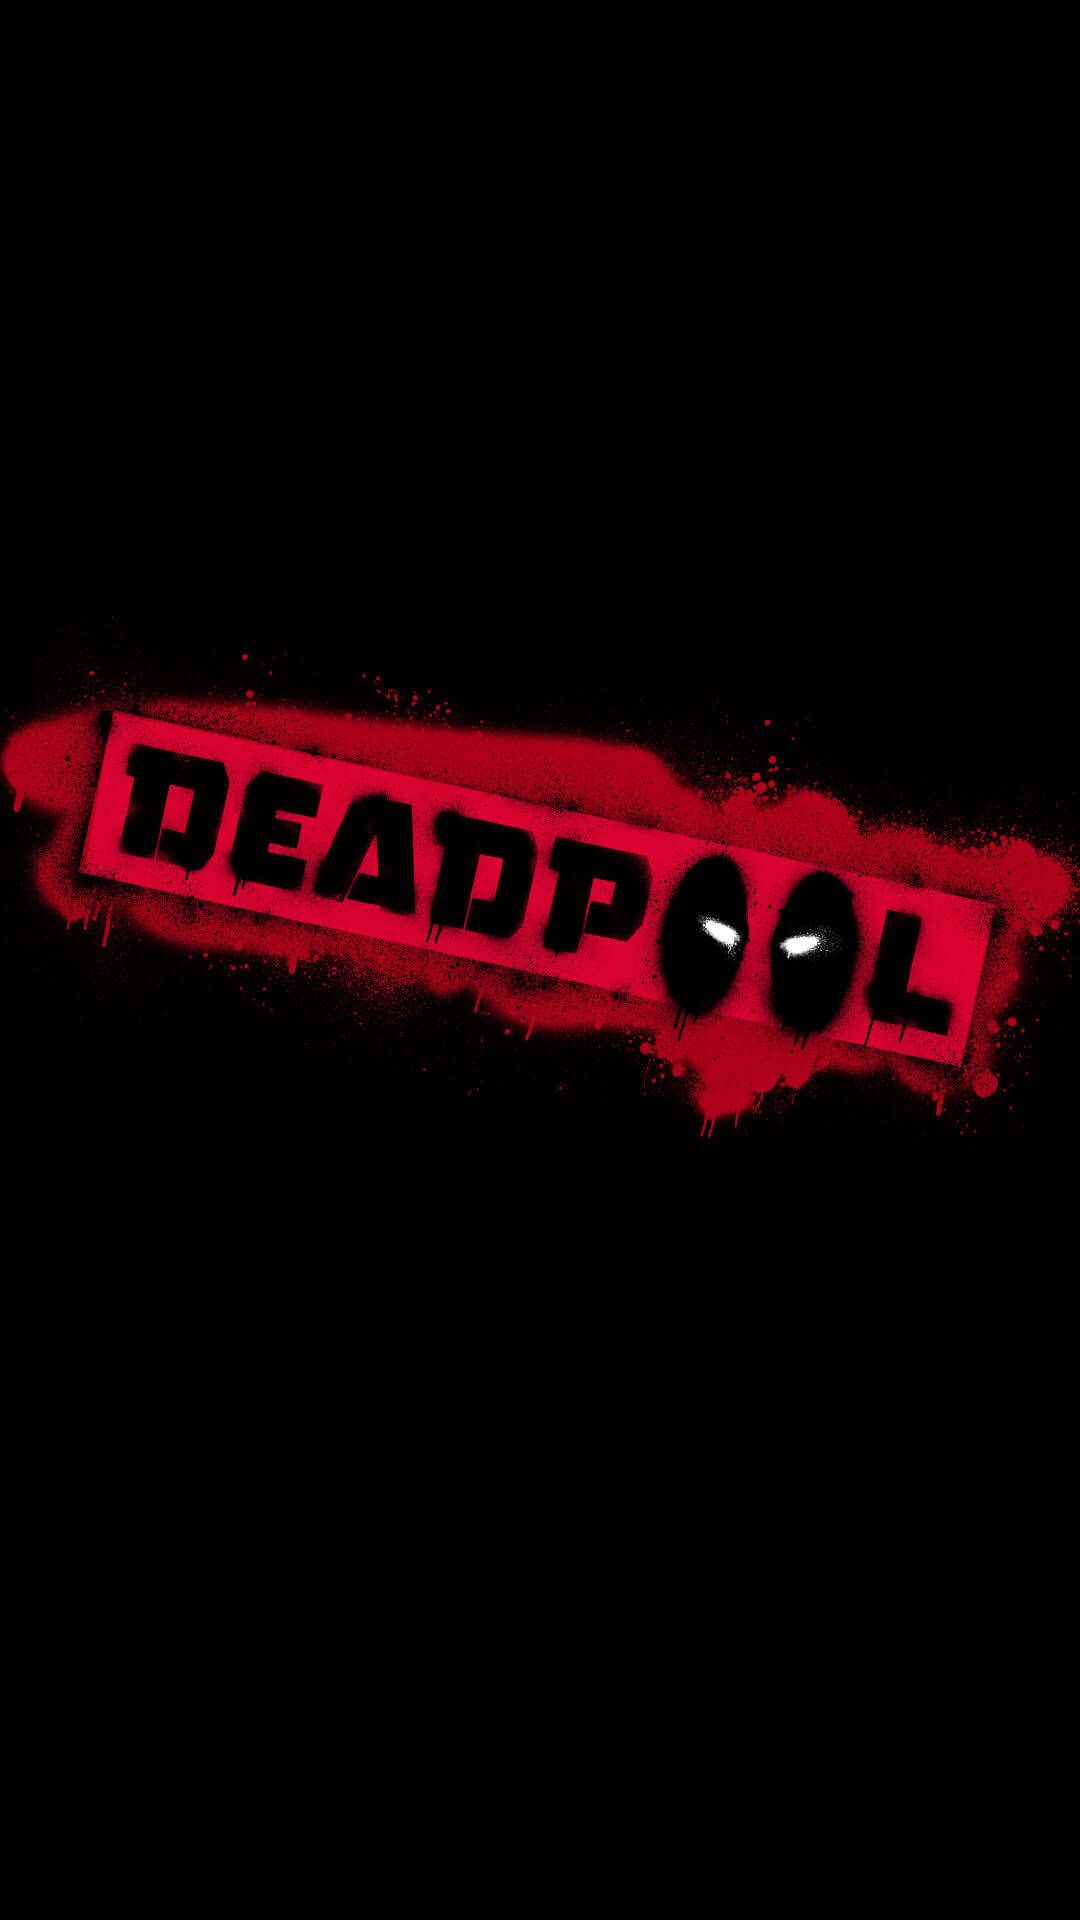 Deadpool Logo IPhone 6 Wallpaper HD